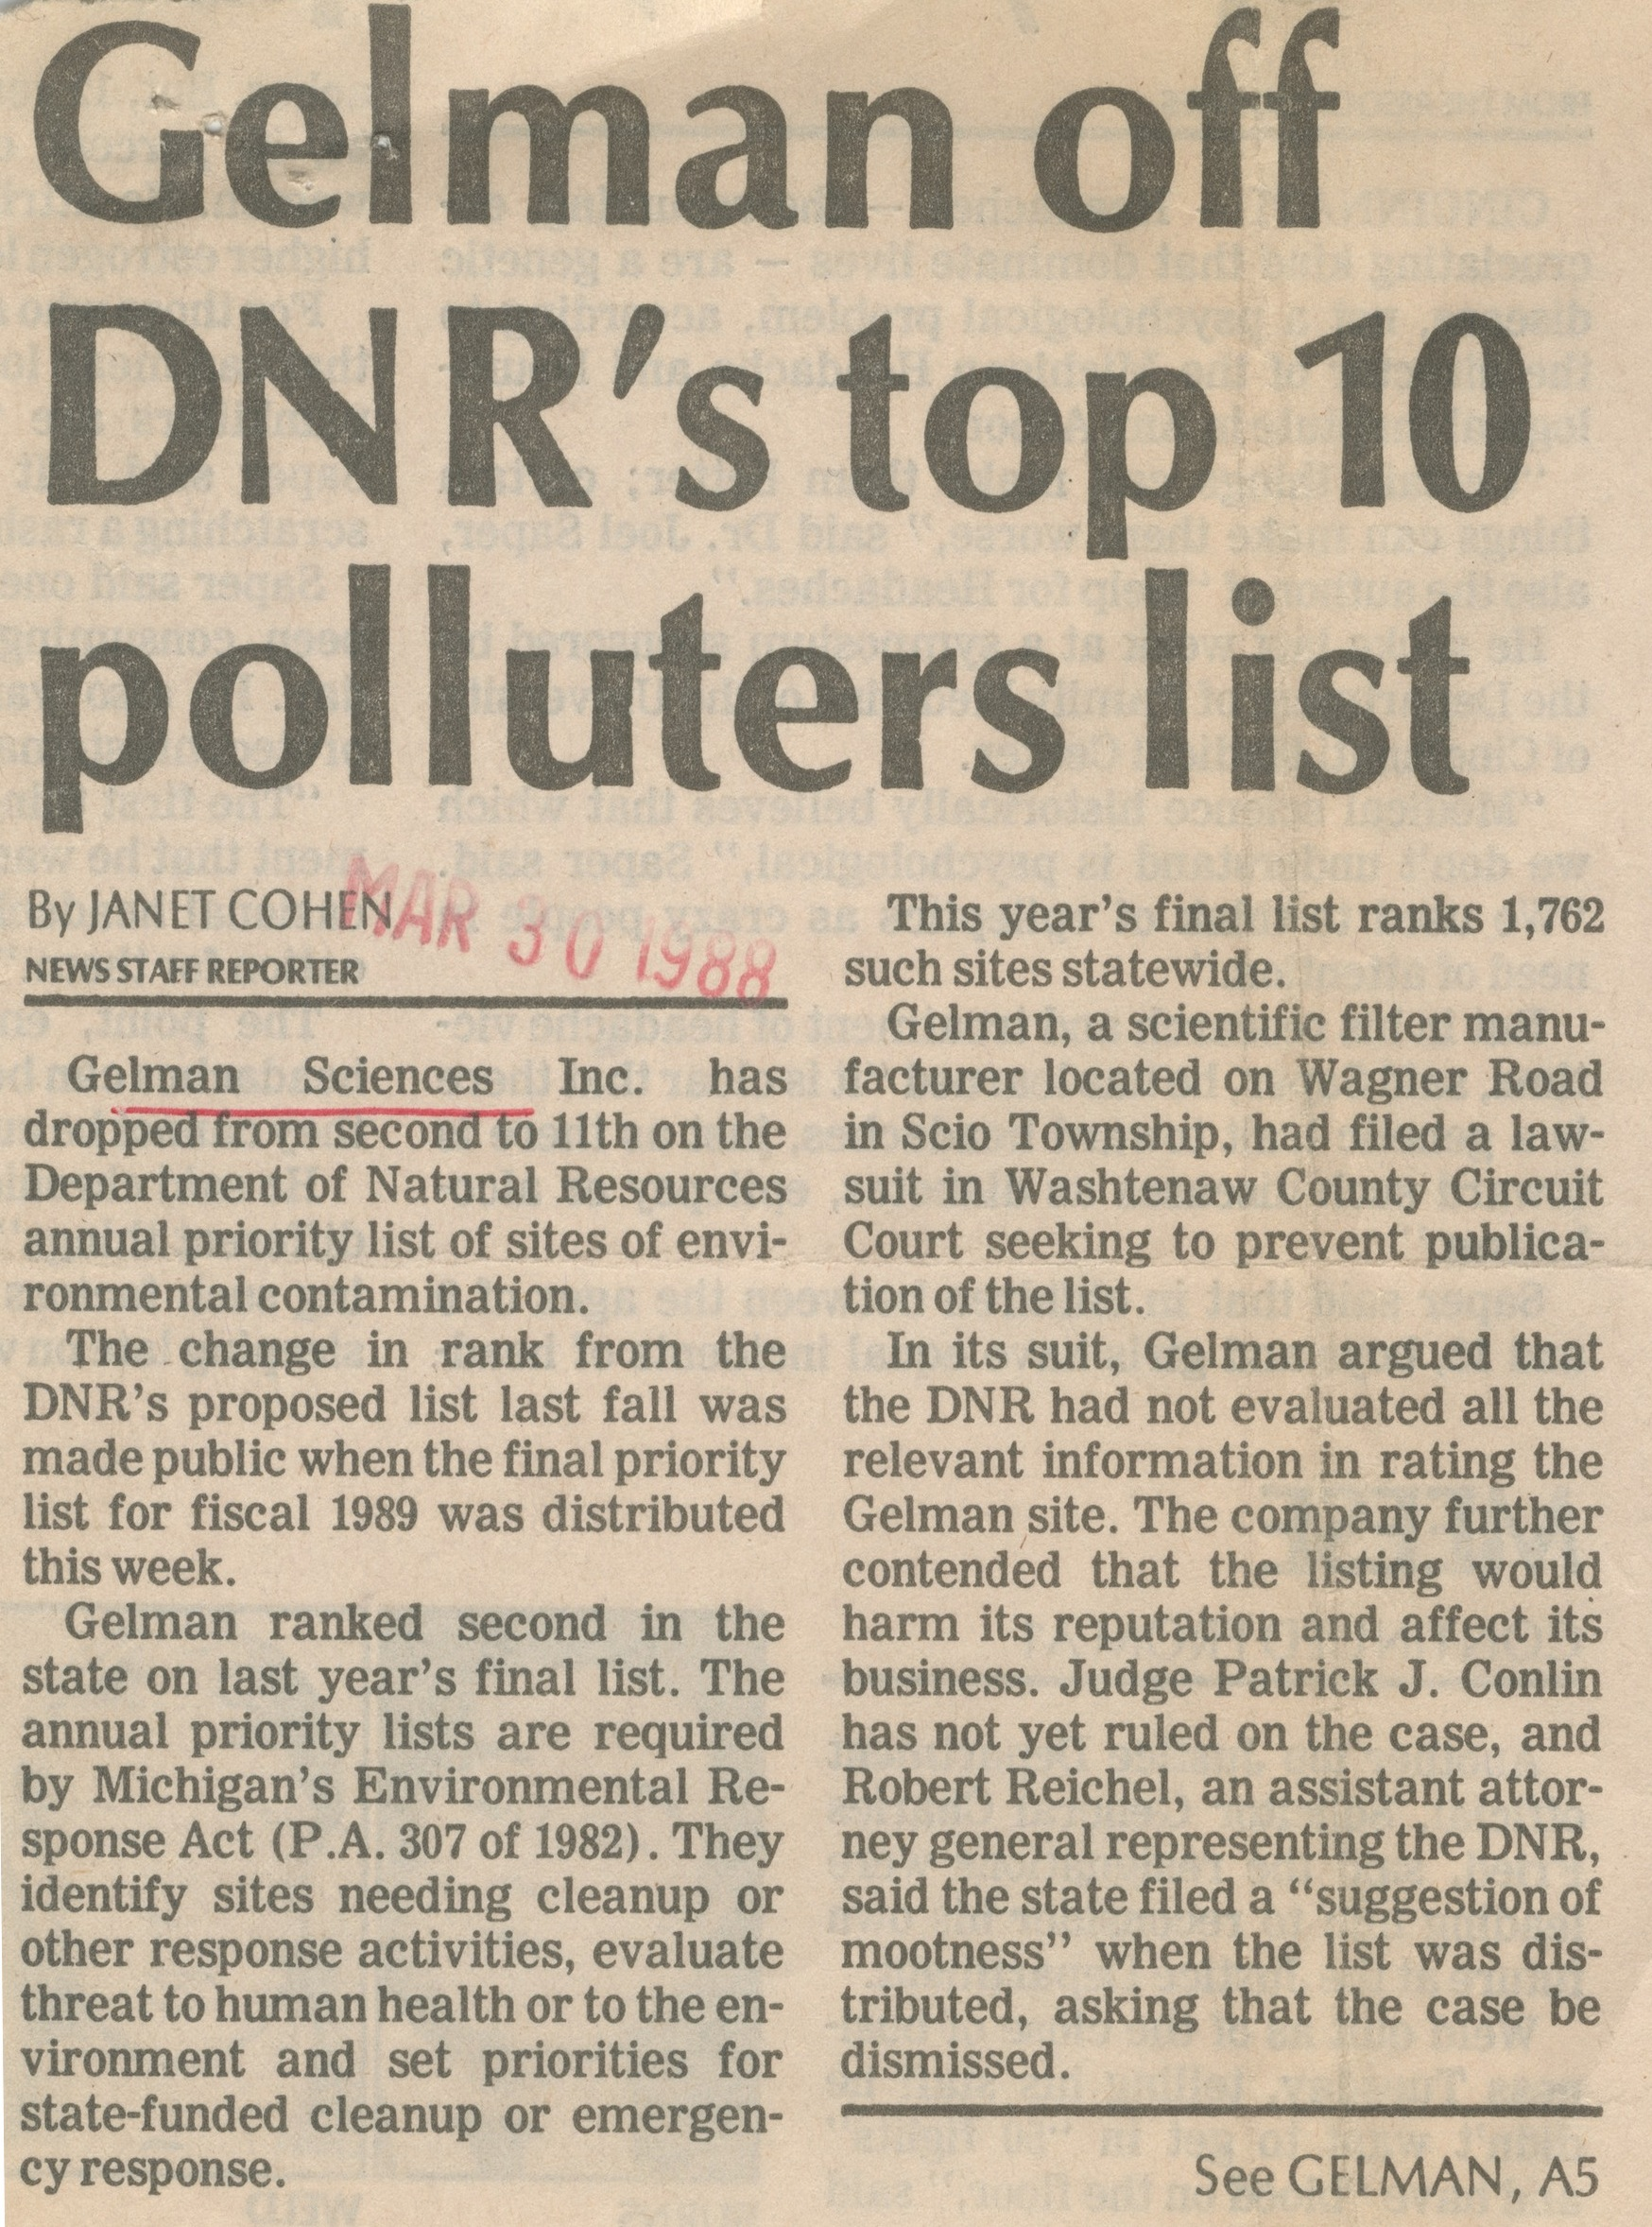 Gelman Off DNR's Top 10 Polluters List image